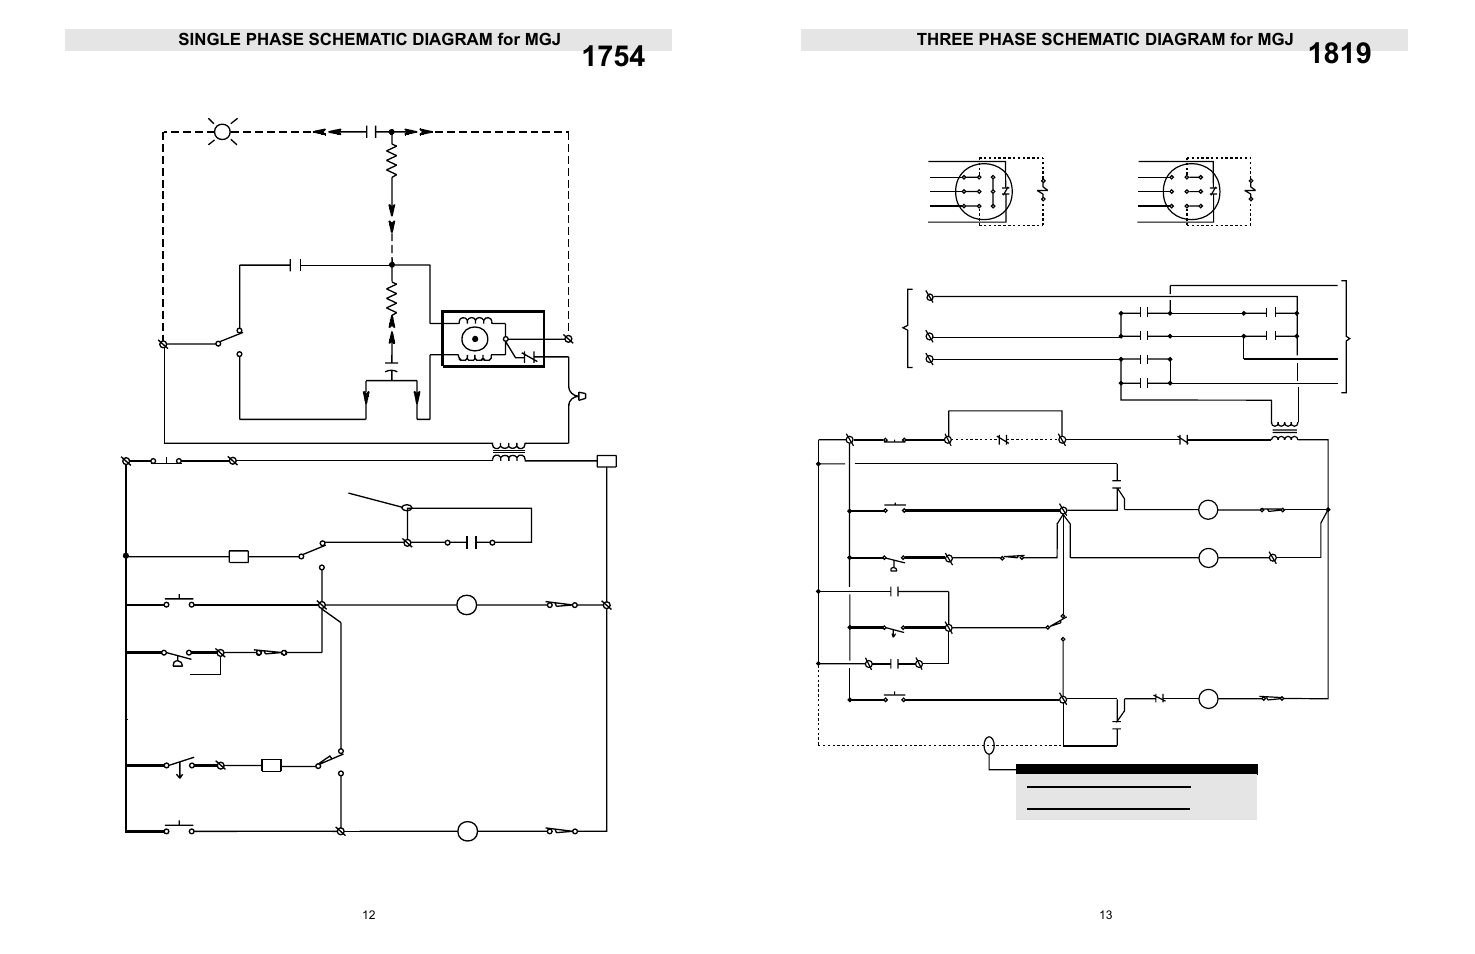 Thre phase schematic diagram for mgj, Single phase schematic diagram for  mgj, Three phase schematic diagram for mgj | LiftMaster LGJ Light-Duty  Gear-Reduced Jackshaft Operator for Rolling Grilles and Shutters User Manual  |Manuals Directory